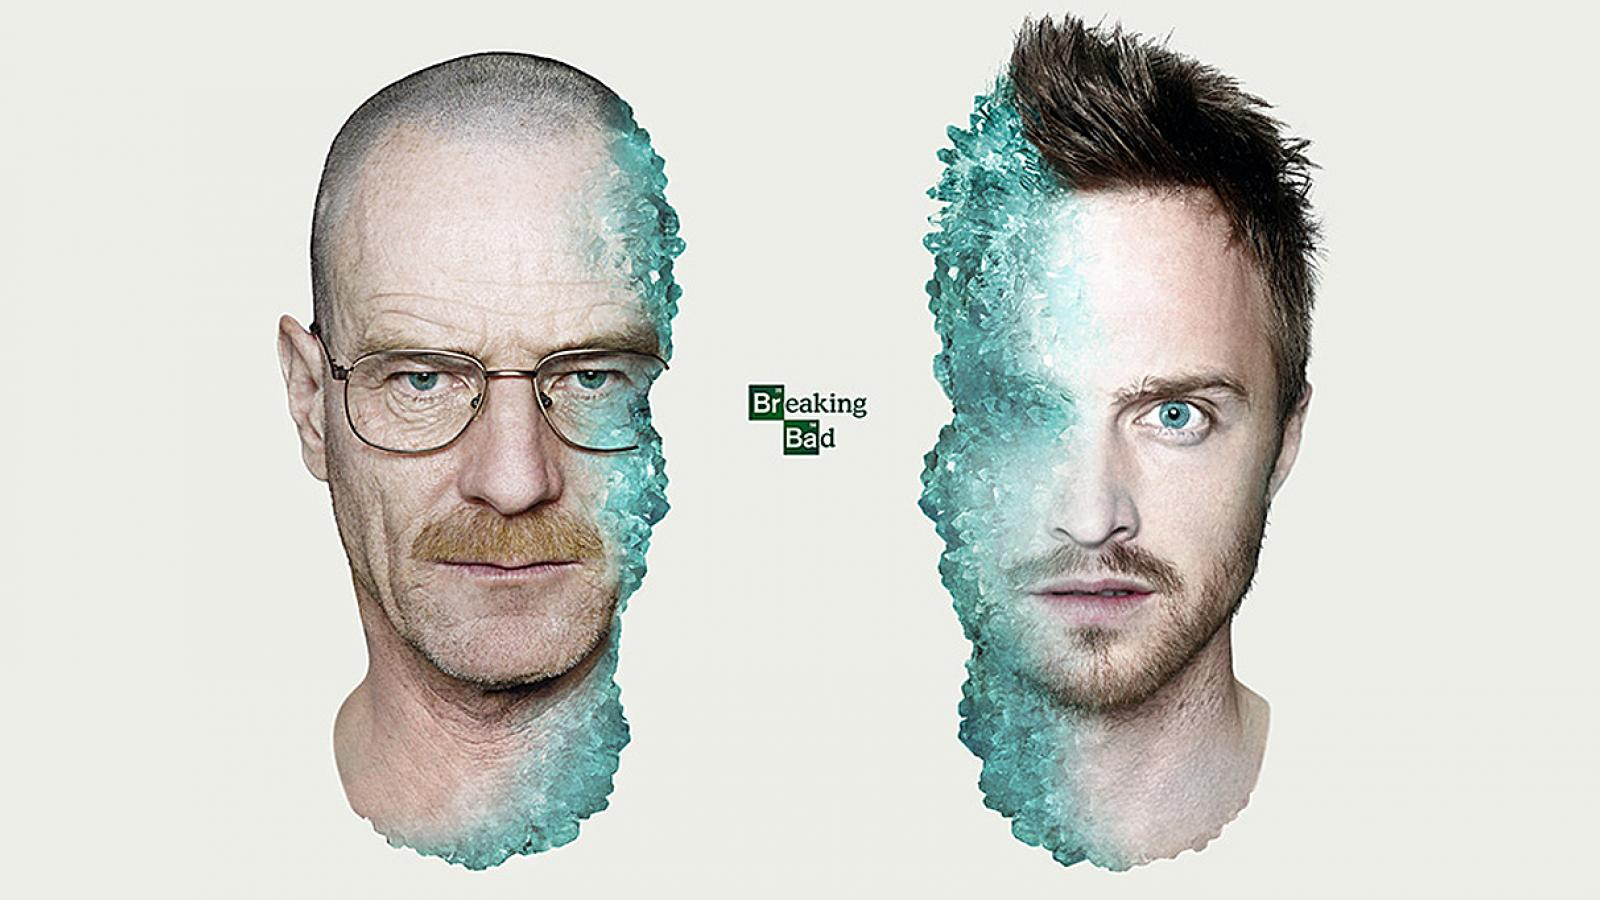 AMC Breaking Bad Posters by Shelby White